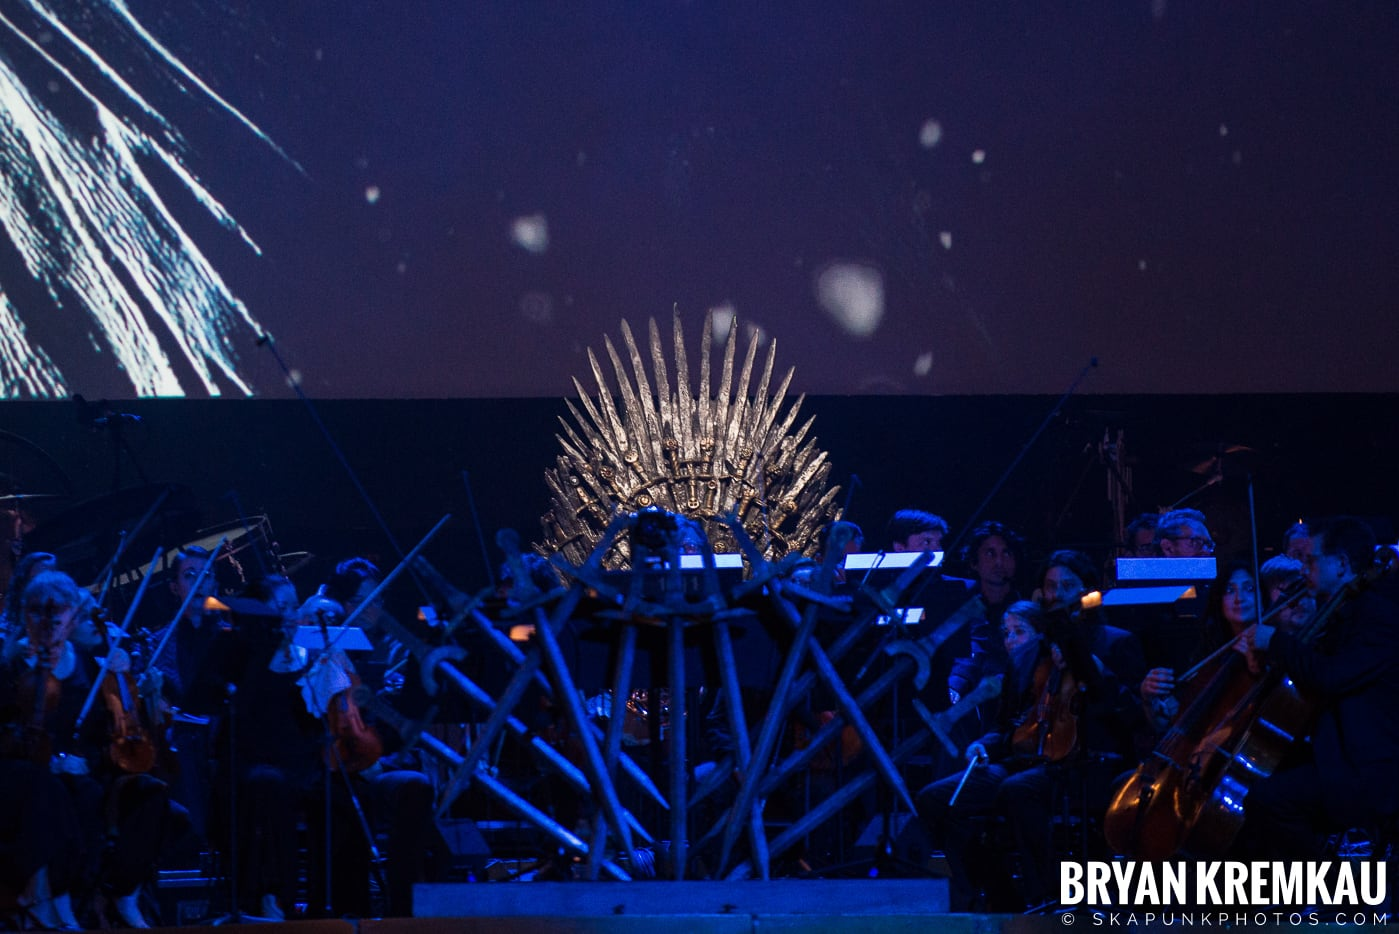 Game of Thrones Live Experience @ Prudential Center, Newark, NJ - 9.26.18 (49)